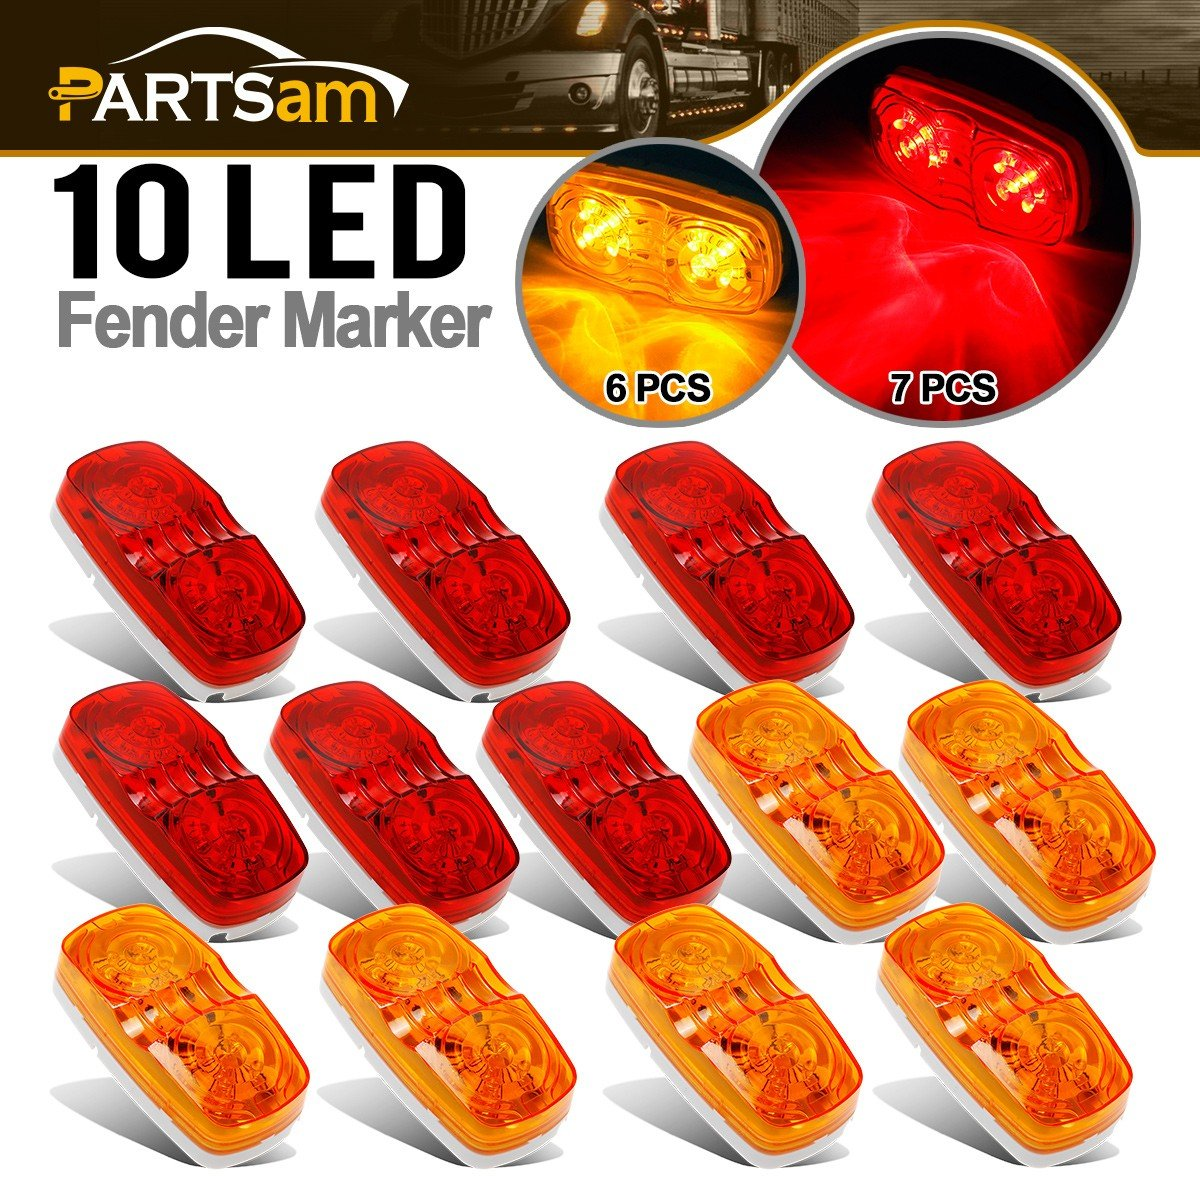 Partsam 13x Trailer Marker LED Light Double Bullseye Amber/Red 10LED Clearance Lights, Double Bullseye LED Trailer Clearance Side Marker Lights, 4x2 Rectangular Rectangle Led Lights, 2 Wire